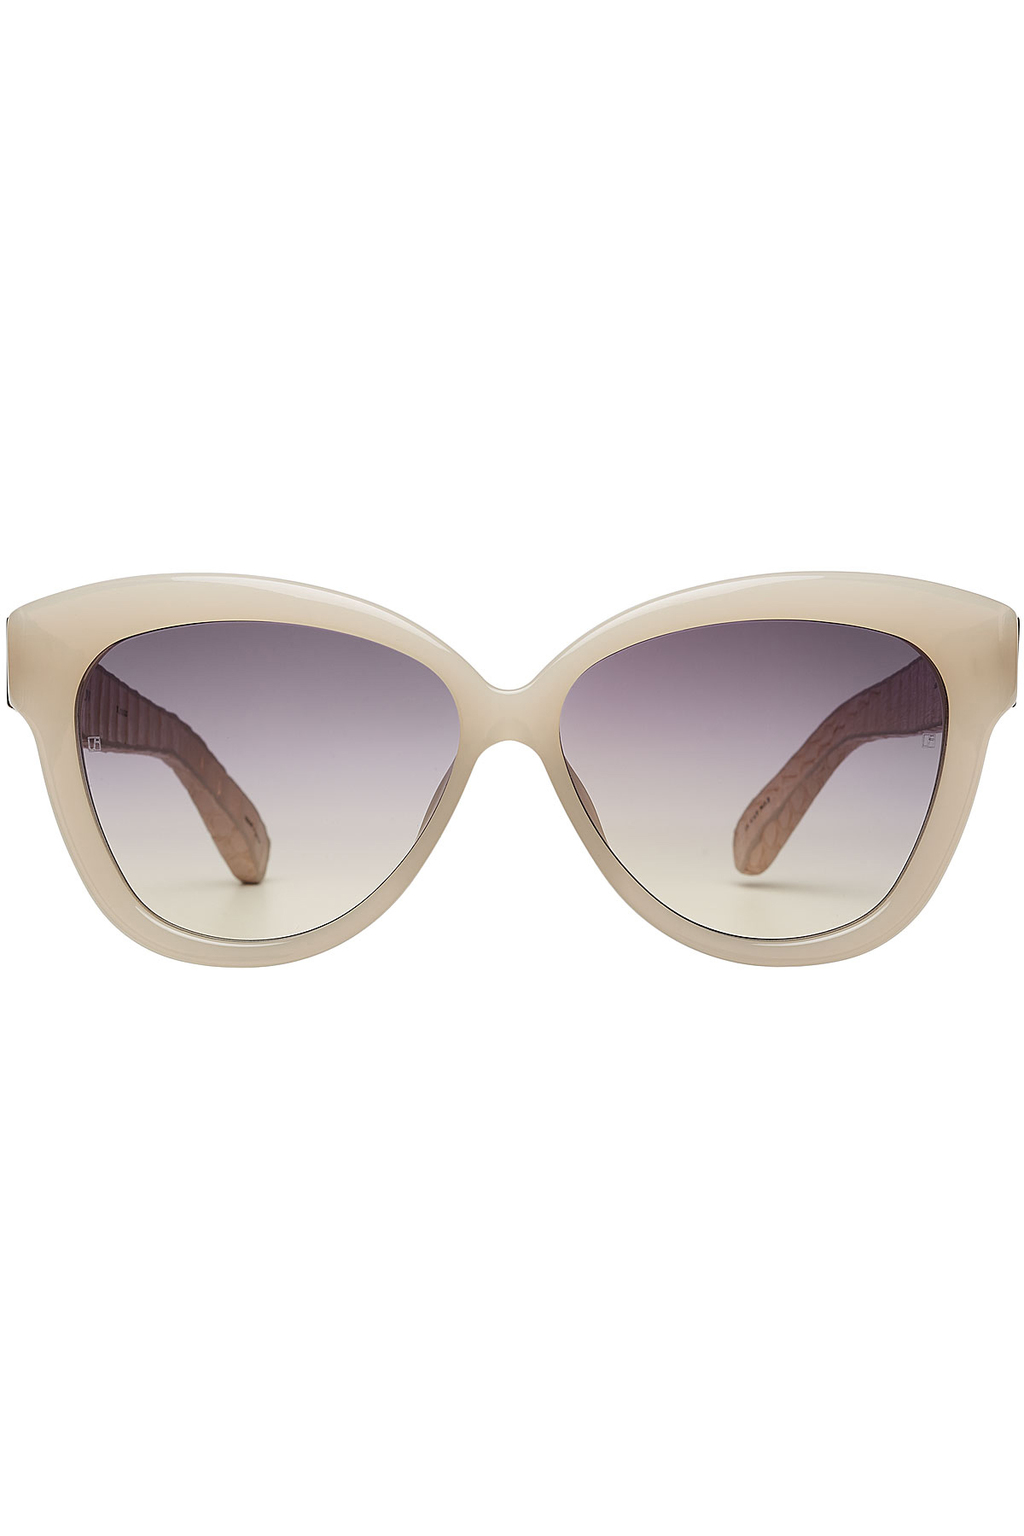 Cat Eye Sunglasses - predominant colour: light grey; occasions: casual, holiday; style: cateye; size: large; material: plastic/rubber; pattern: plain; finish: plain; season: s/s 2016; wardrobe: basic